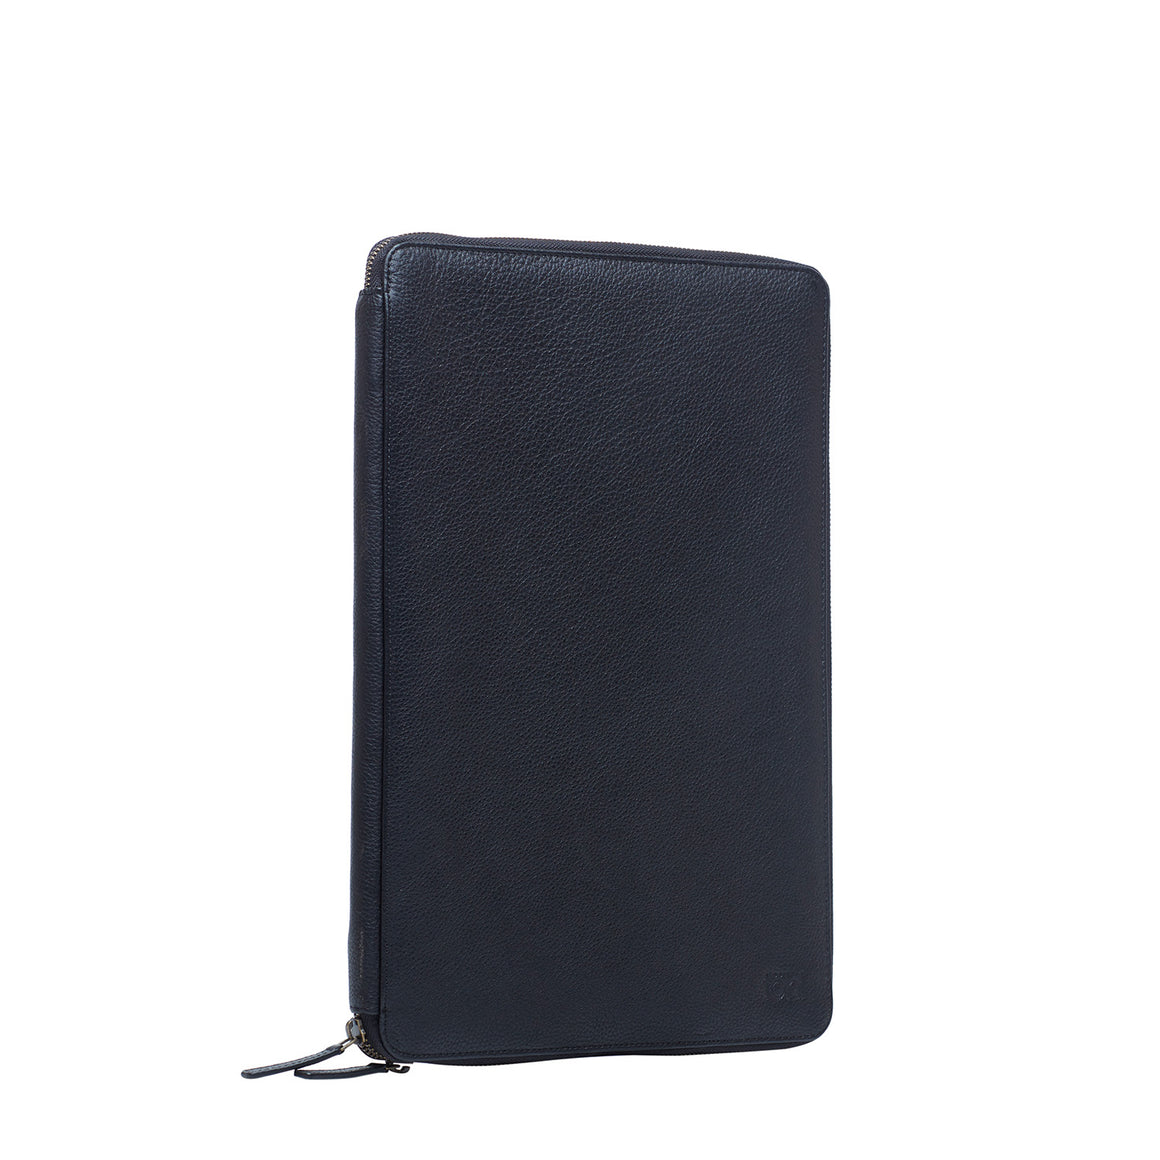 LC 0003 - TOHL FRESNEL MEN'S IPAD SLEEVE - CHARCOAL BLACK